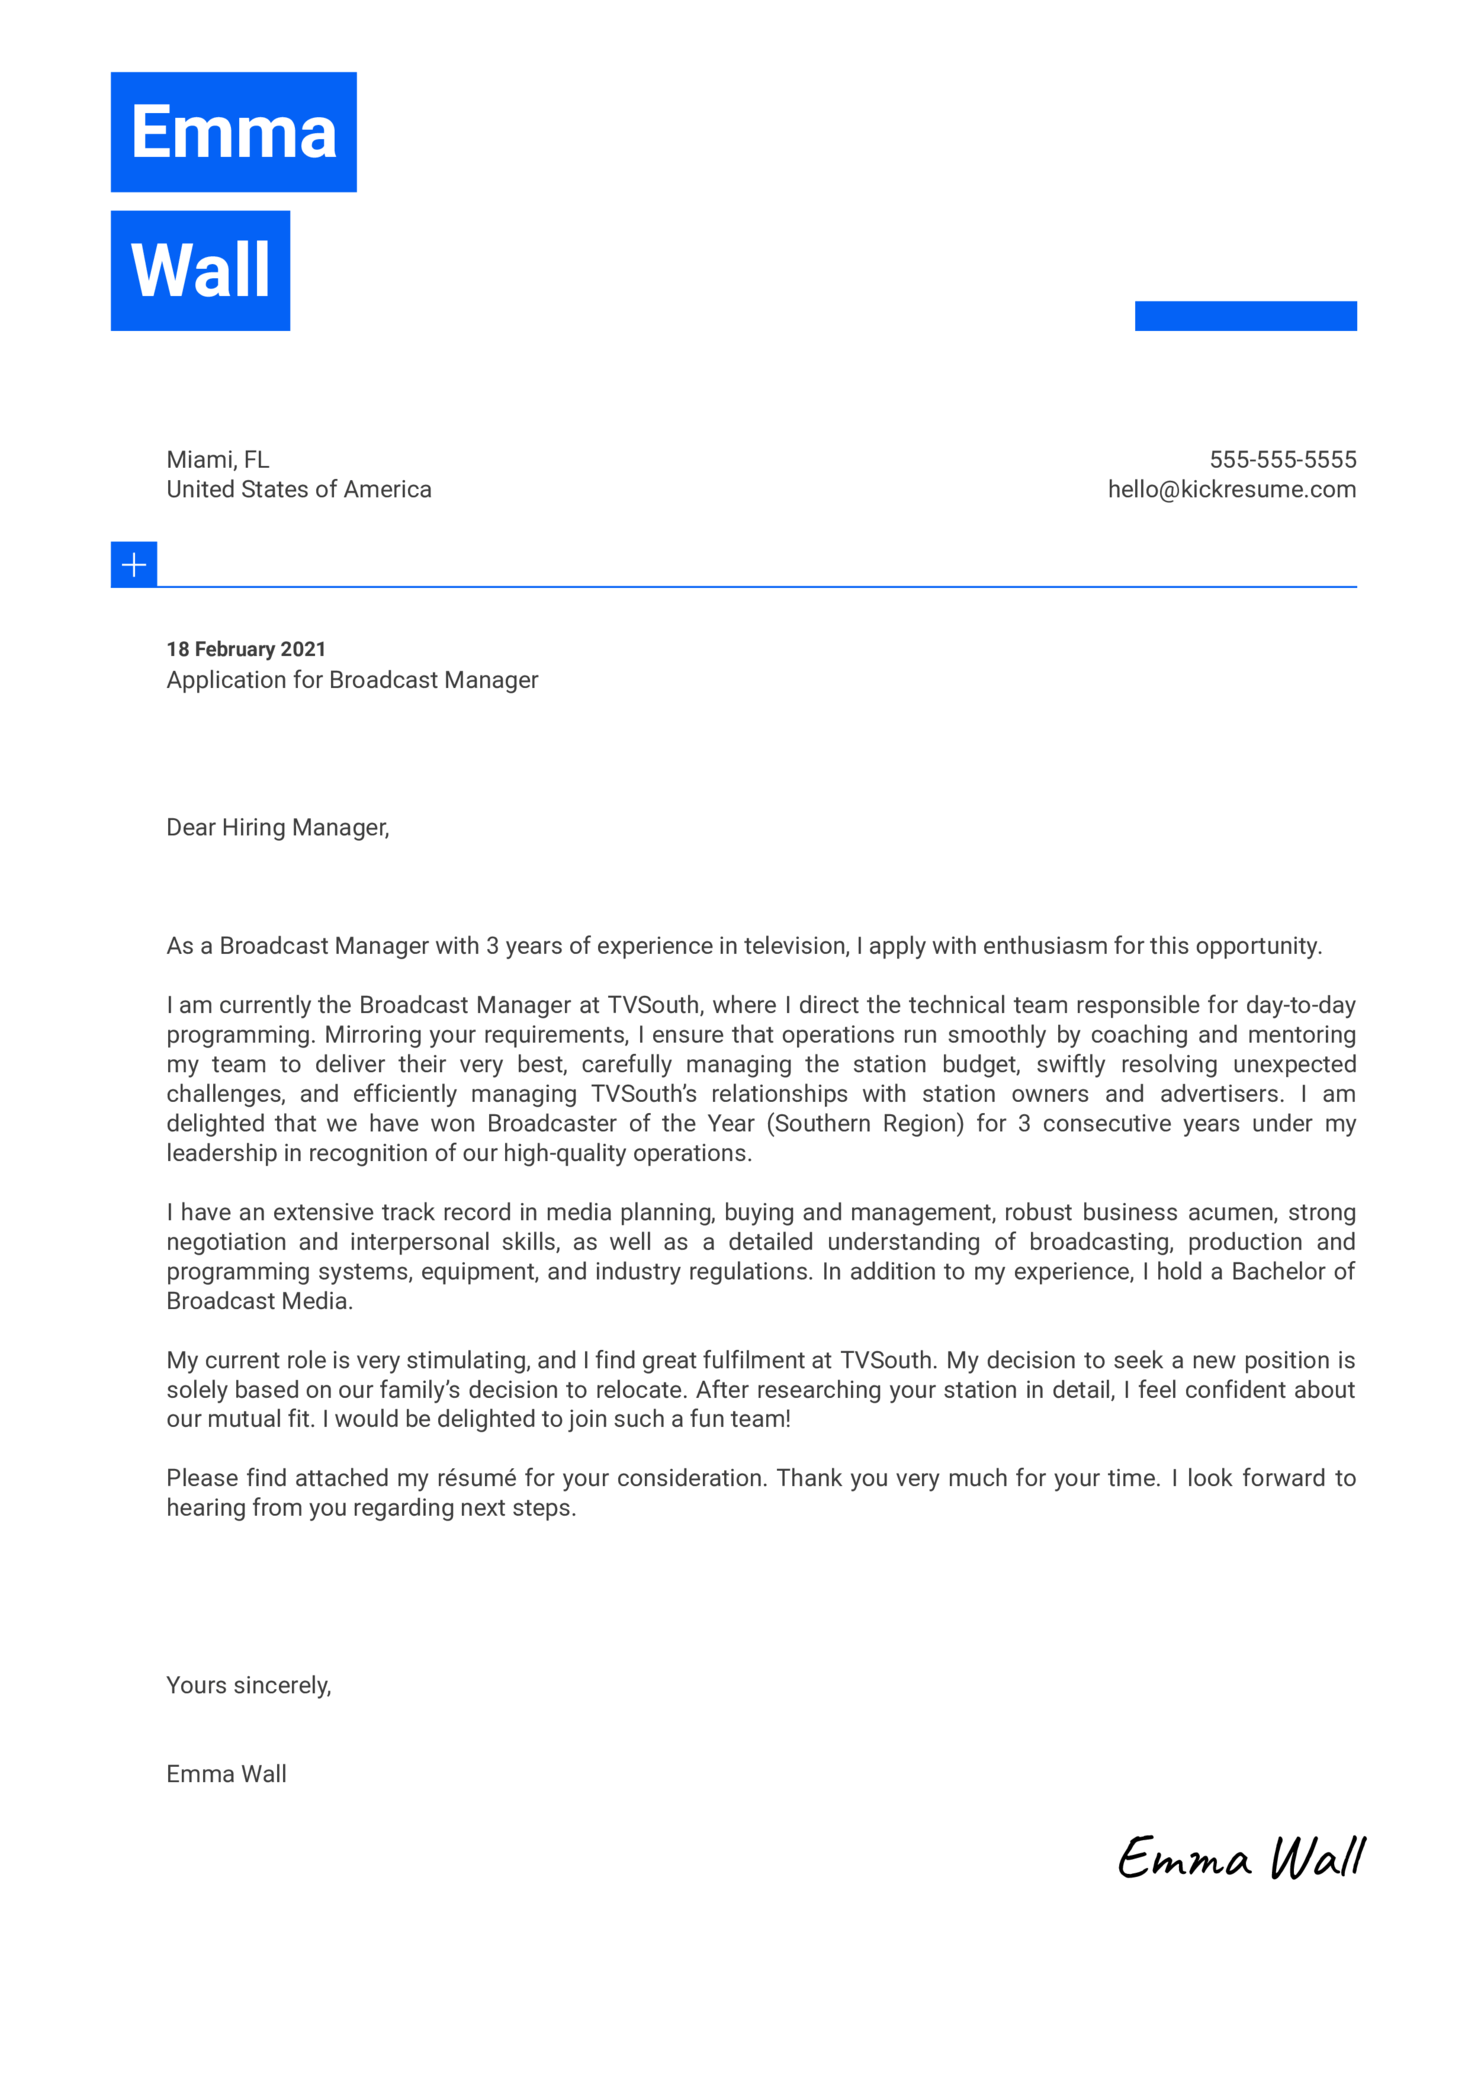 Broadcast Manager Cover Letter Sample